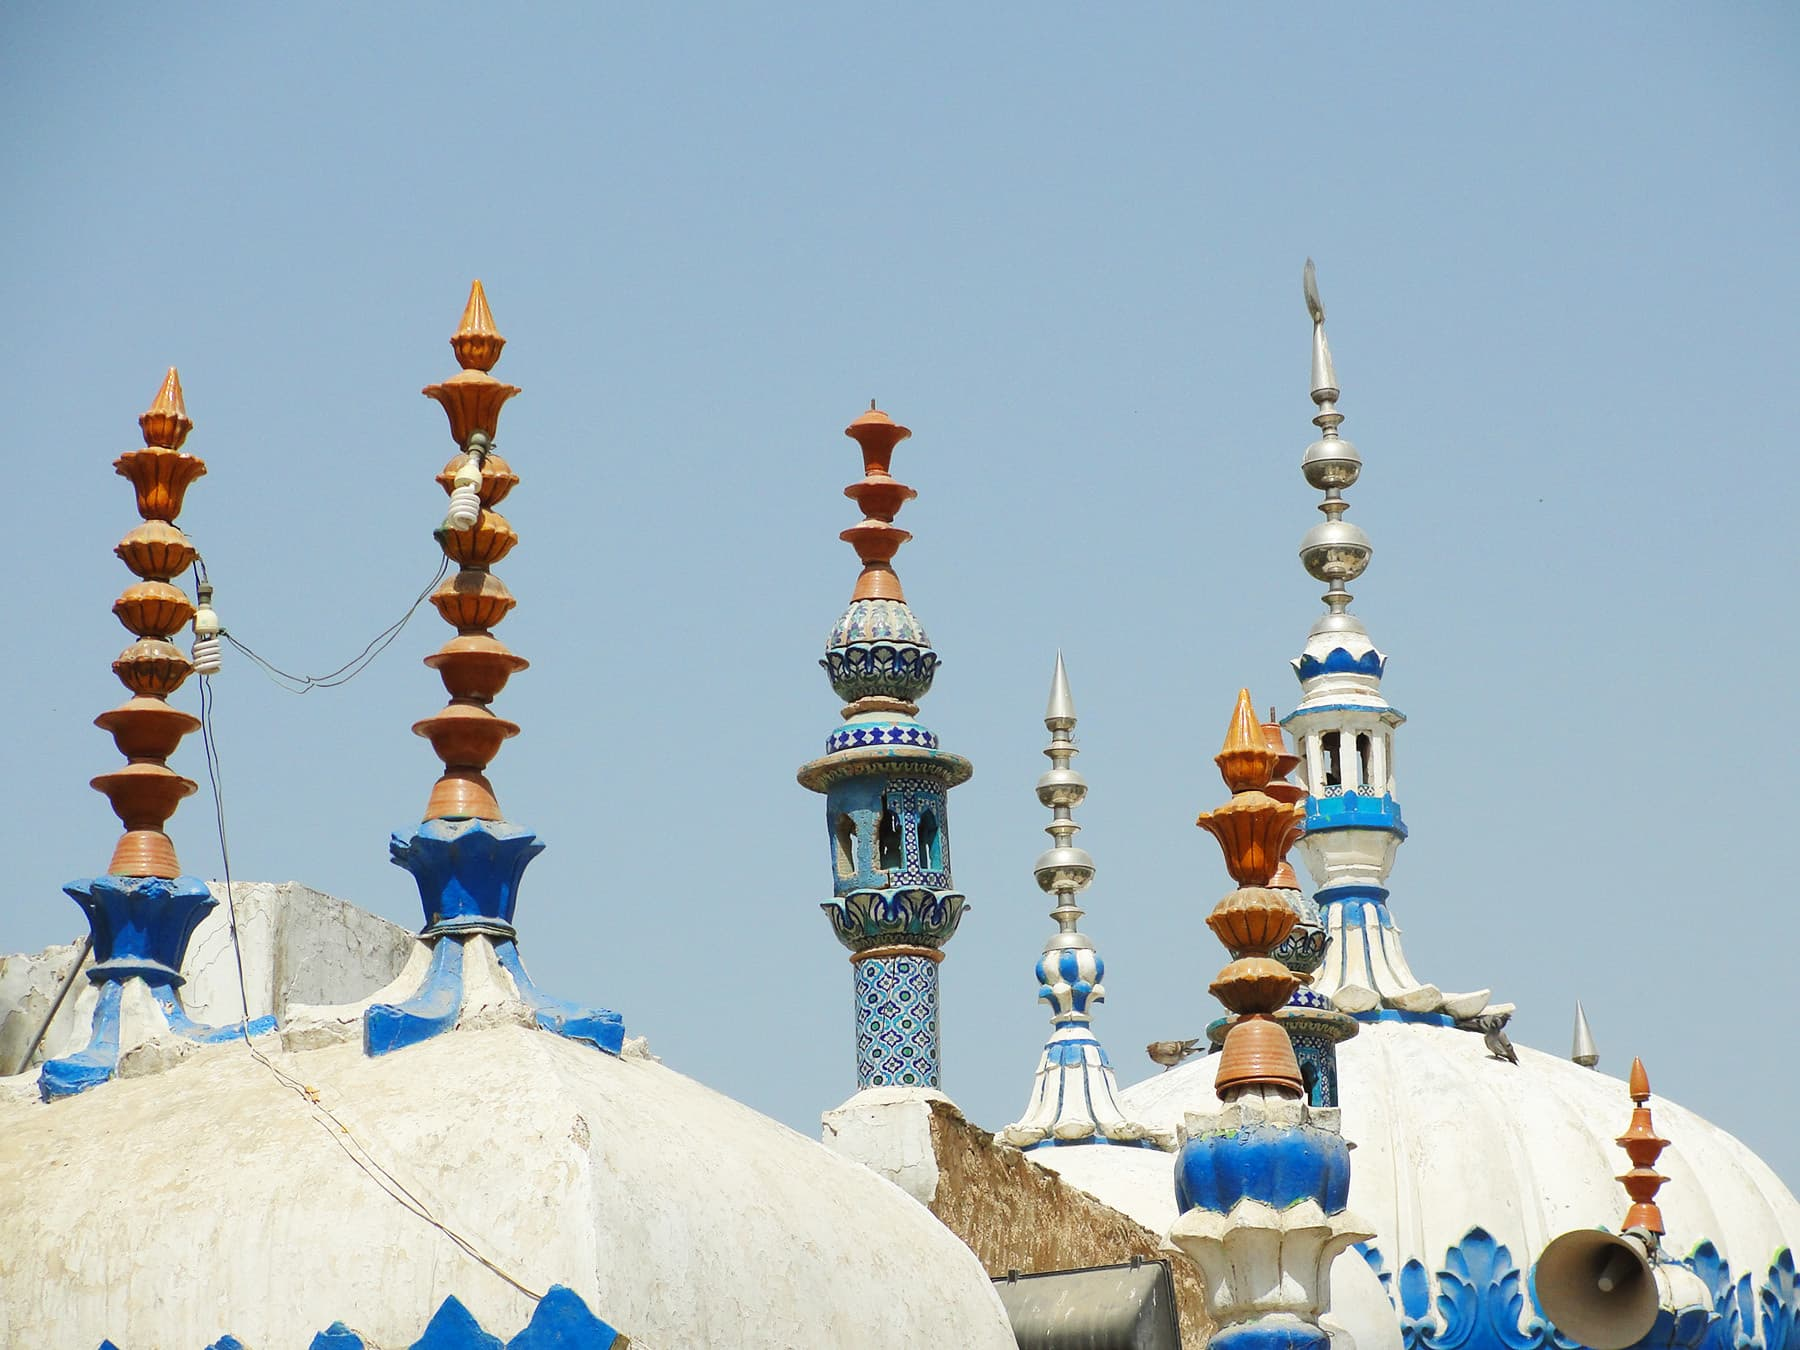 Spires on the domes.